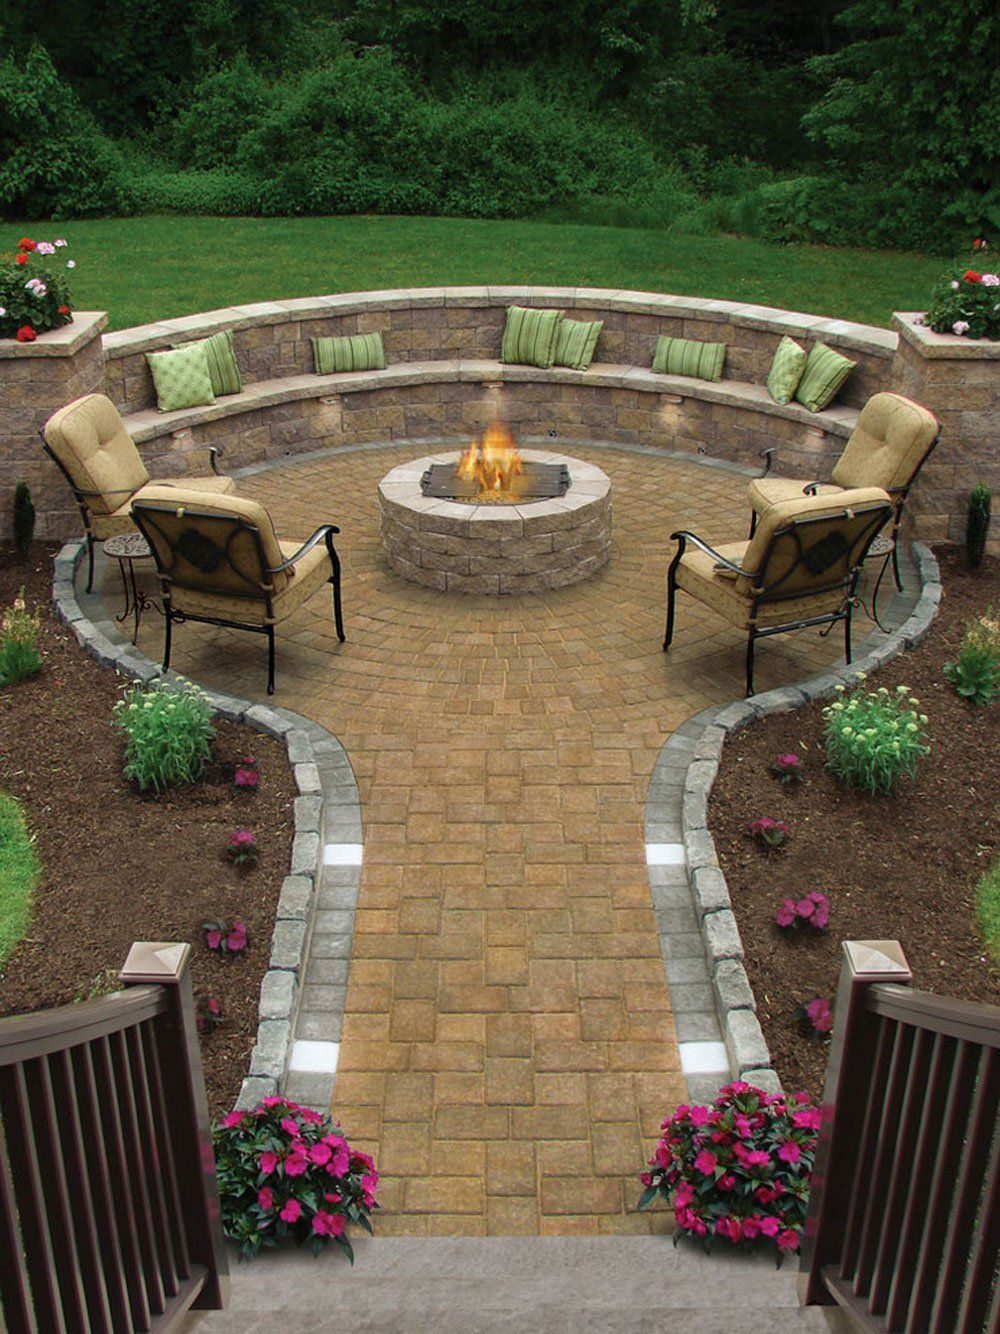 17 Of The Most Amazing Seating Area Around The Fire Pit Ever regarding measurements 1000 X 1334